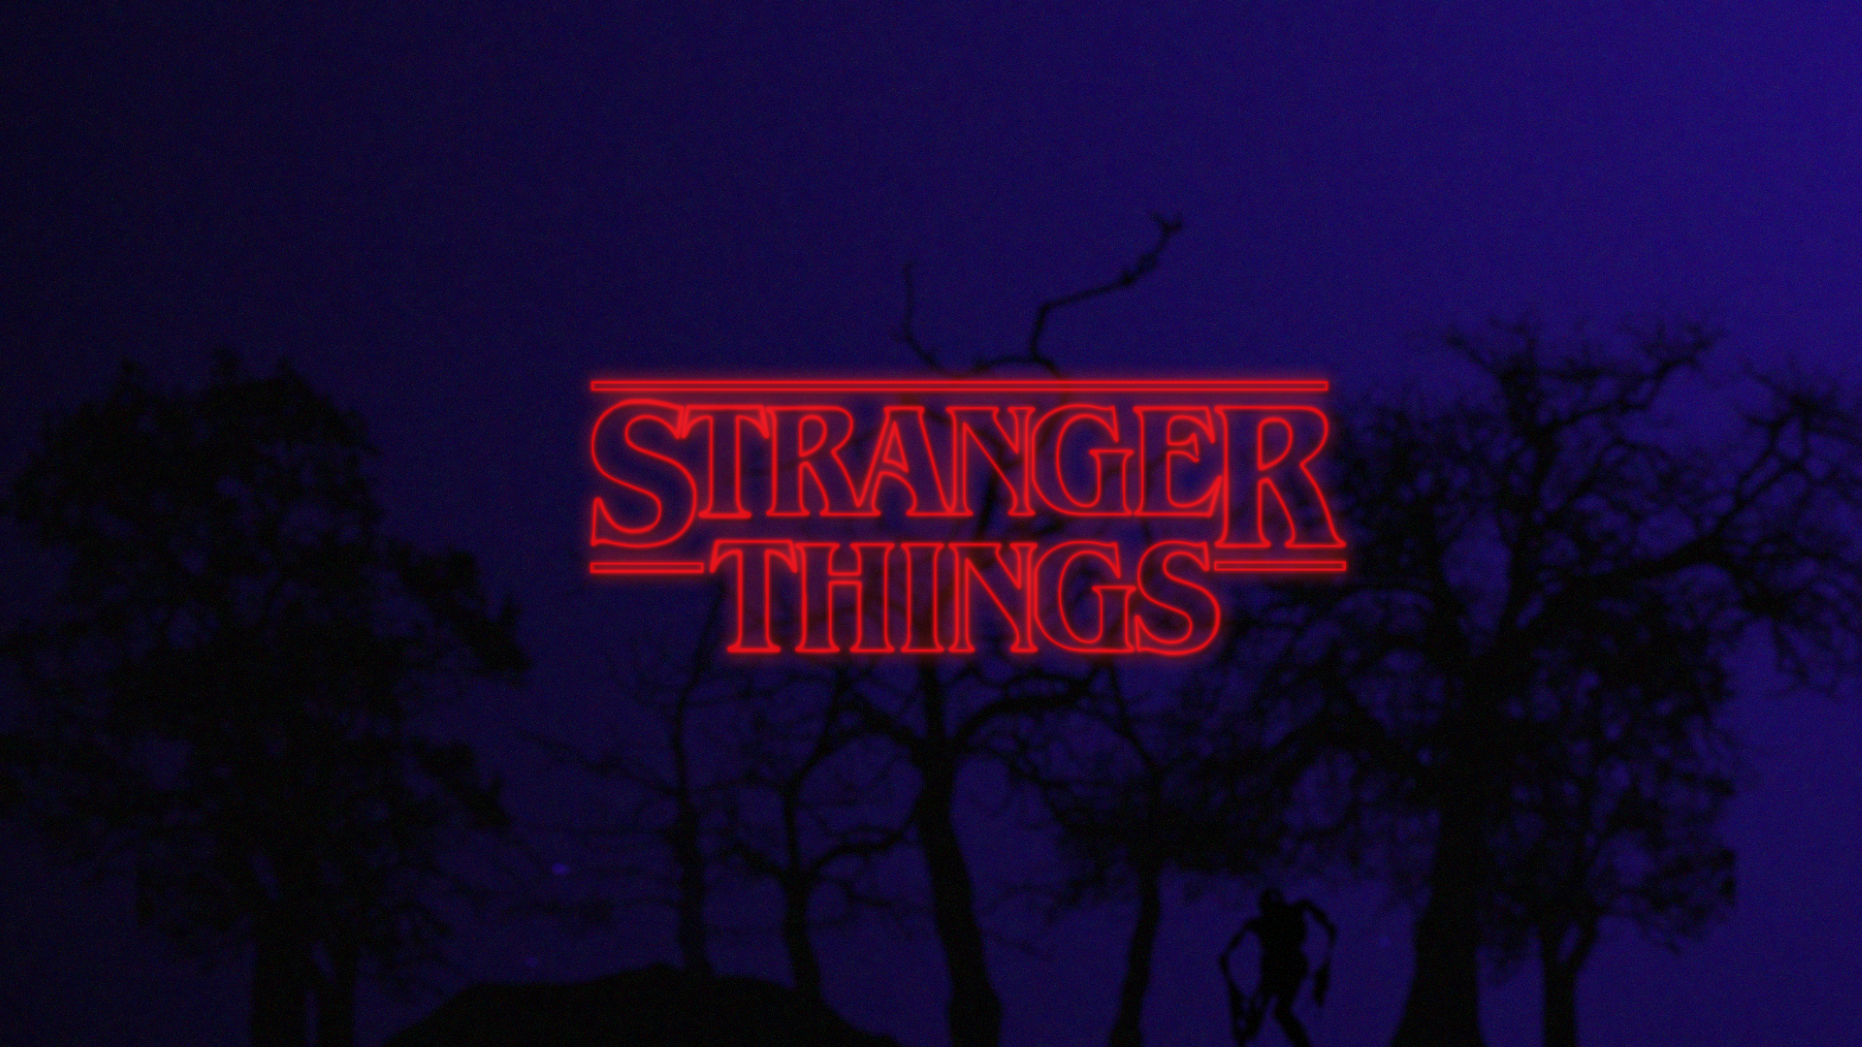 Stranger Things Wallpaper Pictures to Pin 1862x1047